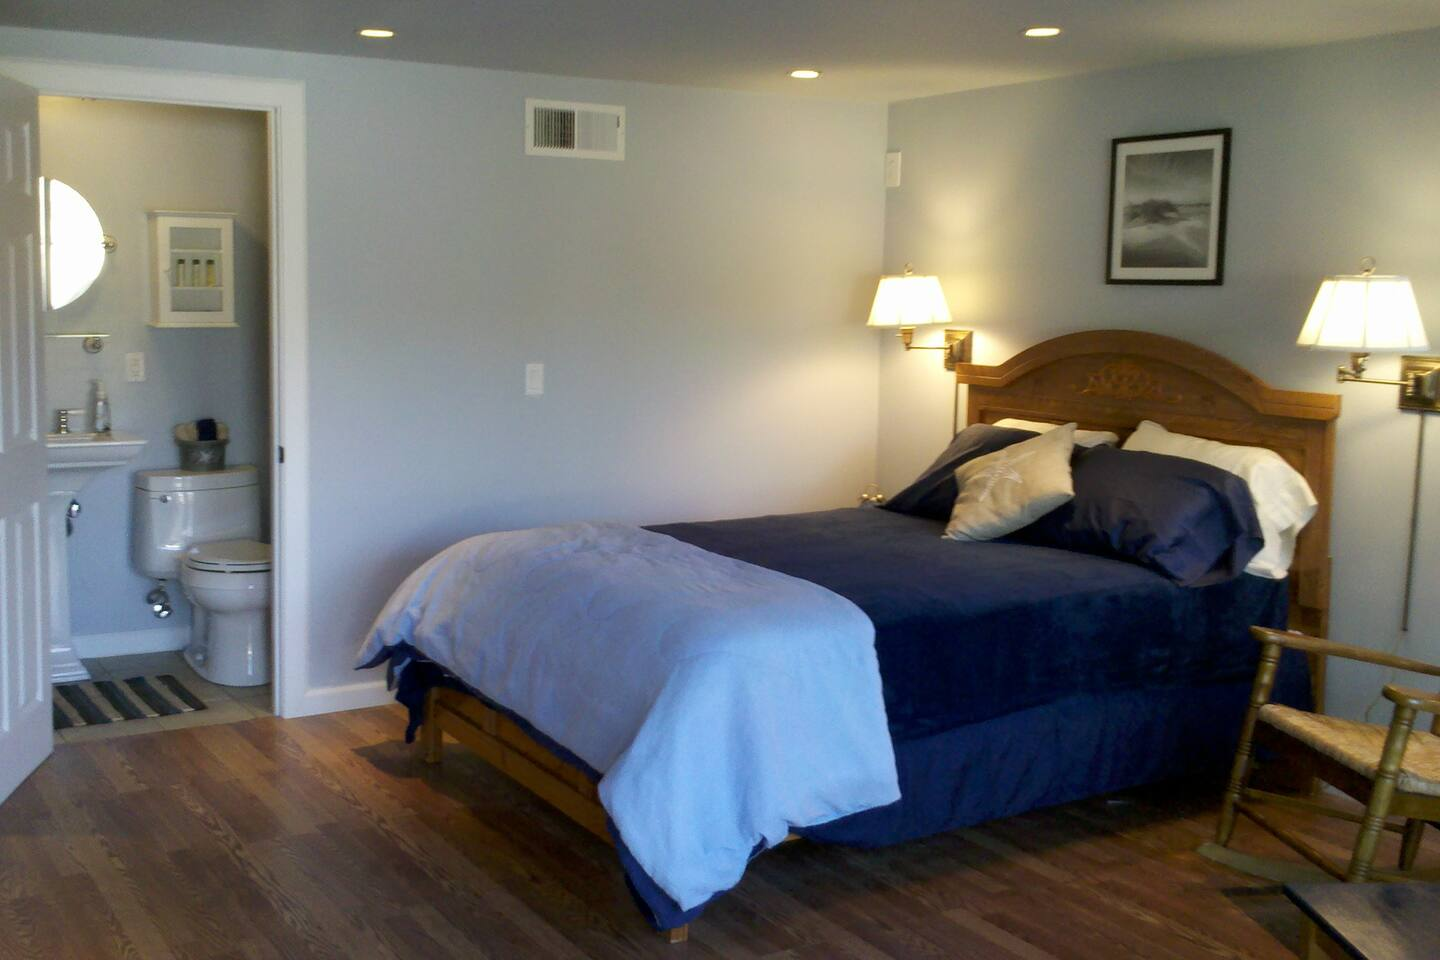 1 bed/bath in our Oceanfront home